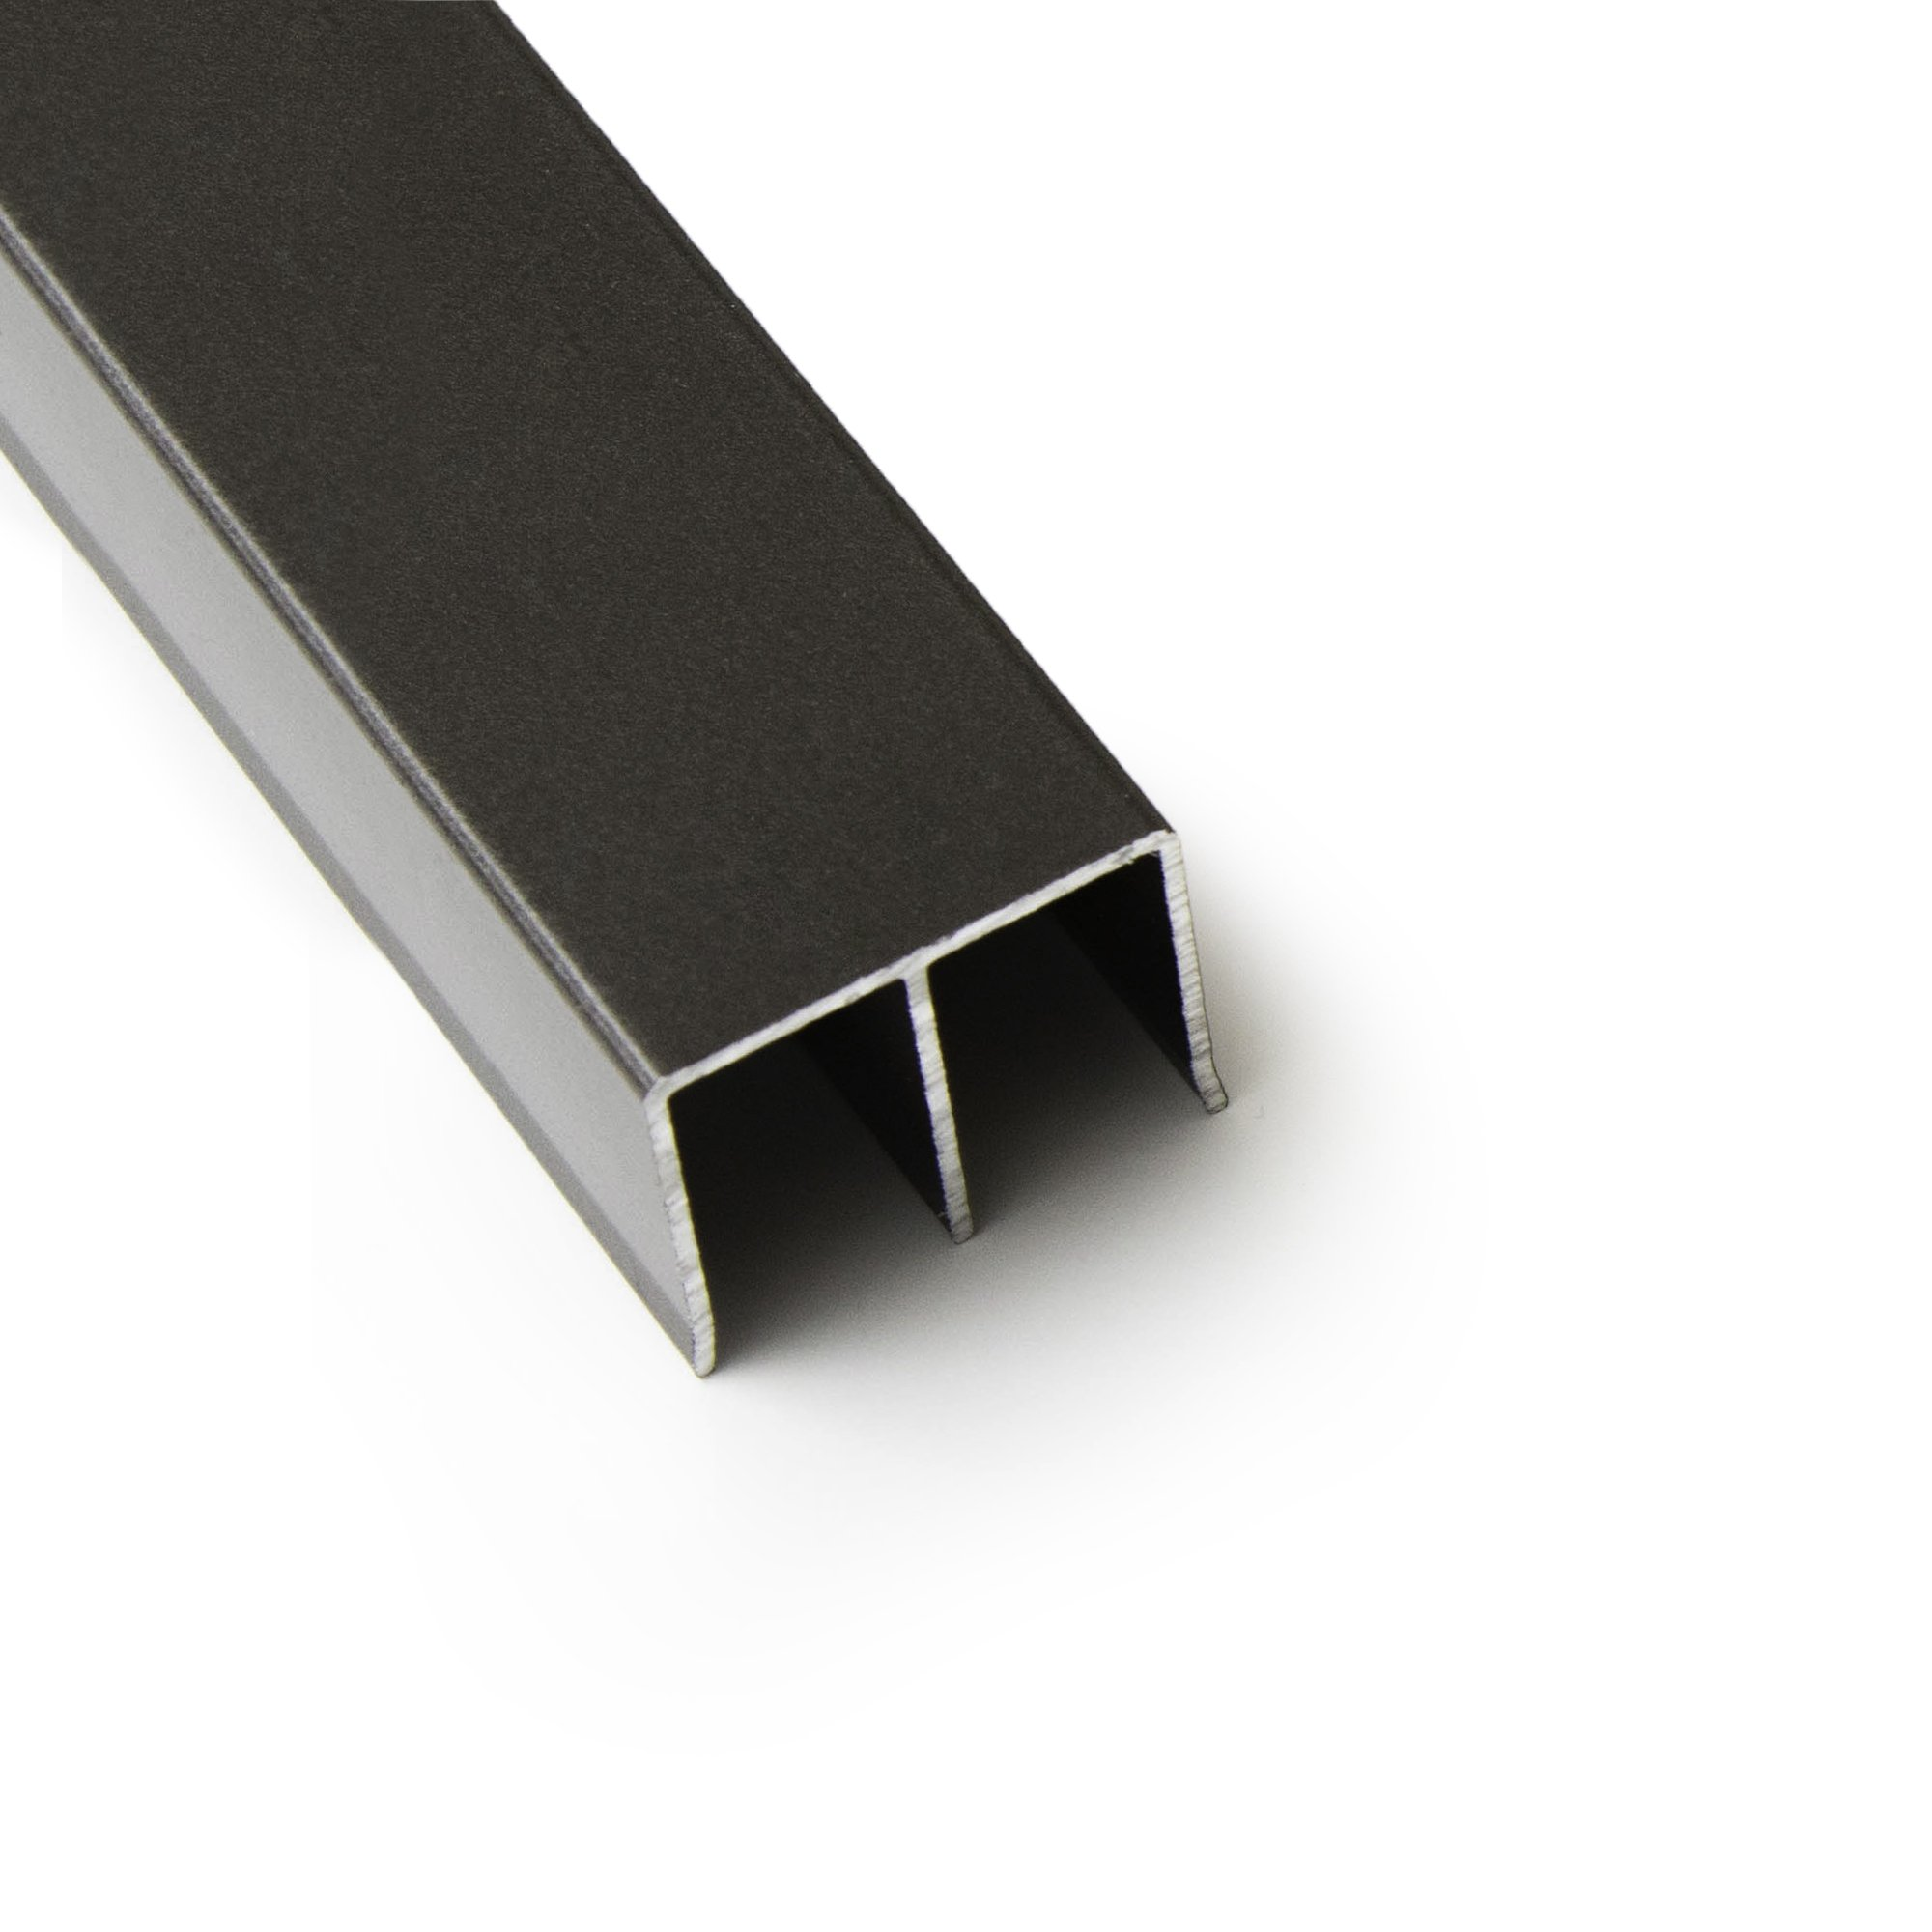 Top Double Track for By-Pass Sliding Screen Doors - 1'' Deep (Bronze) by Metro Screenworks Inc.